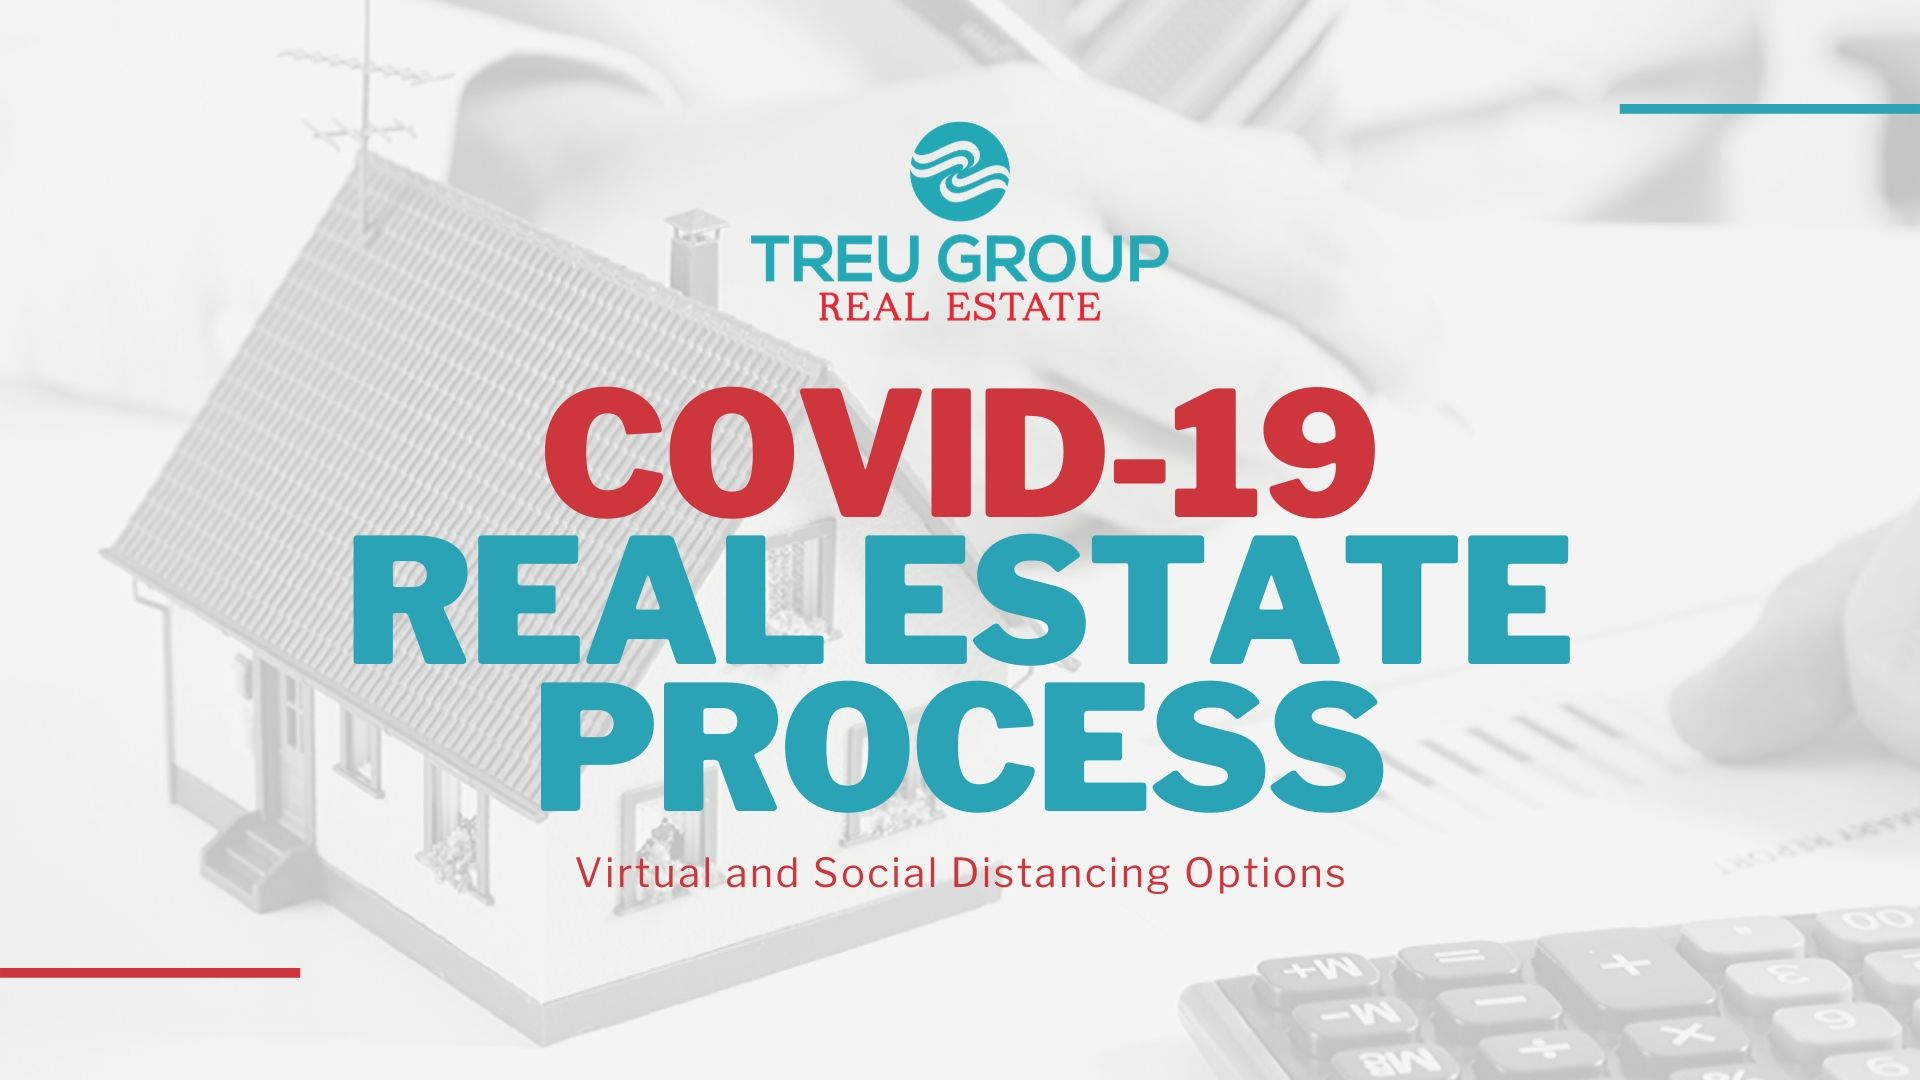 Real Estate Process During COVID-19 Pandemic